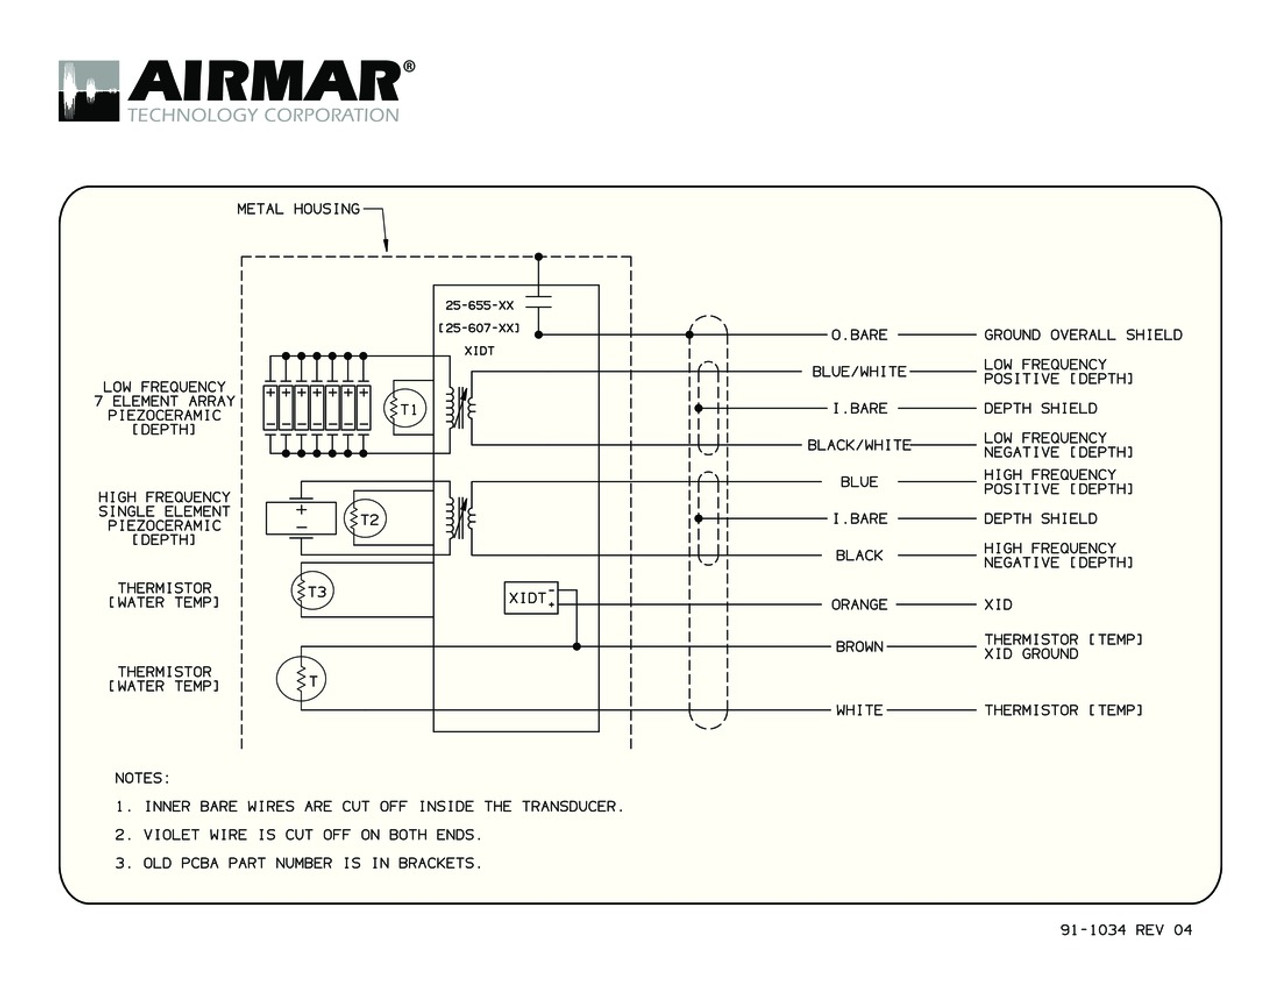 Transducer Wiring Diagram | Wiring Library